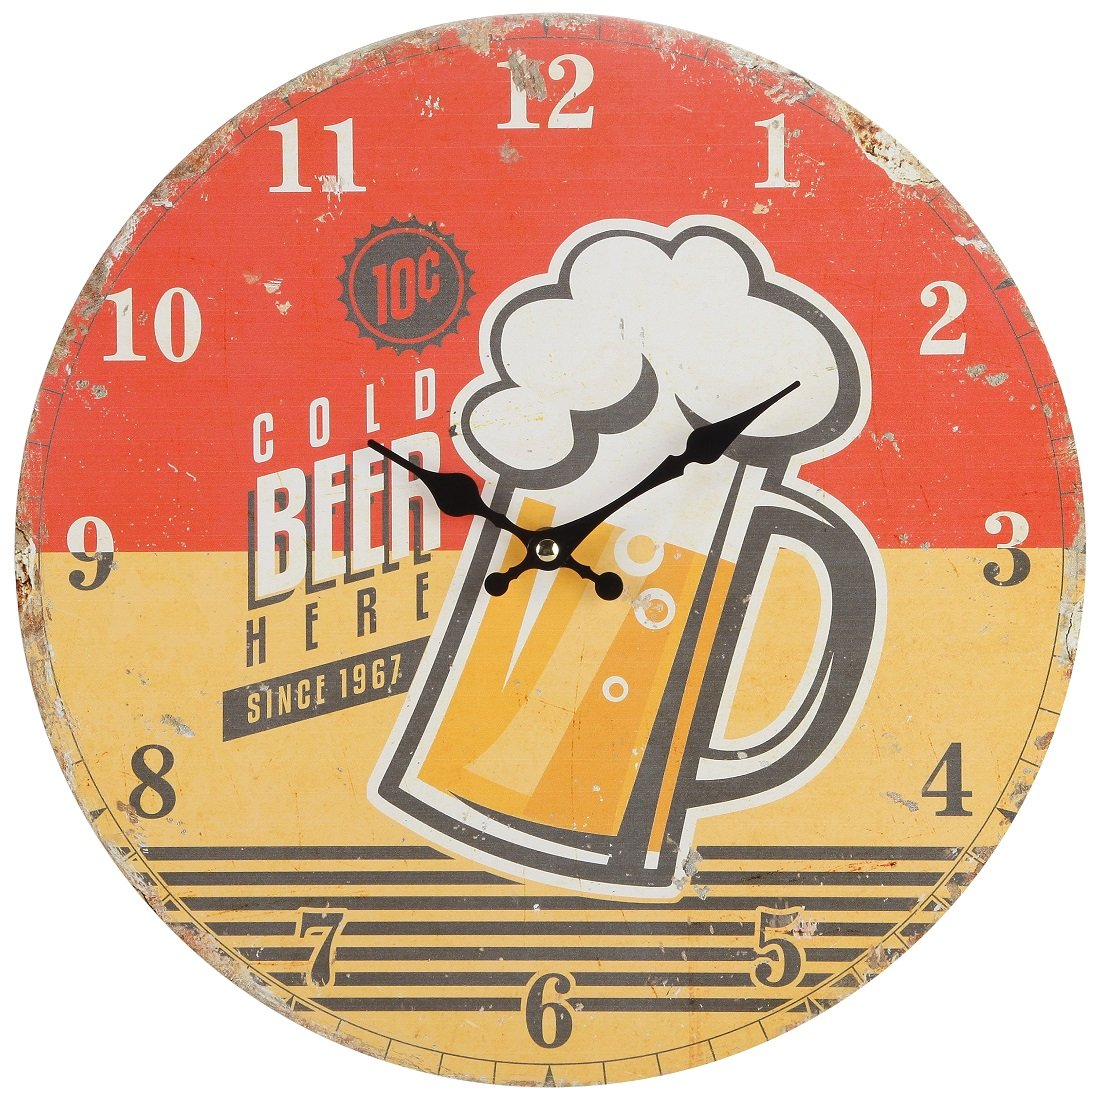 Lily's Home Retro Style 1960s Vintage Inspired Man Cave Beer Wall Clock, Fits Well In Man Cave, Den or Game Room, Battery-Powered with Quartz Movement, Ideal Gift for Beer Lover (13'' Diameter)